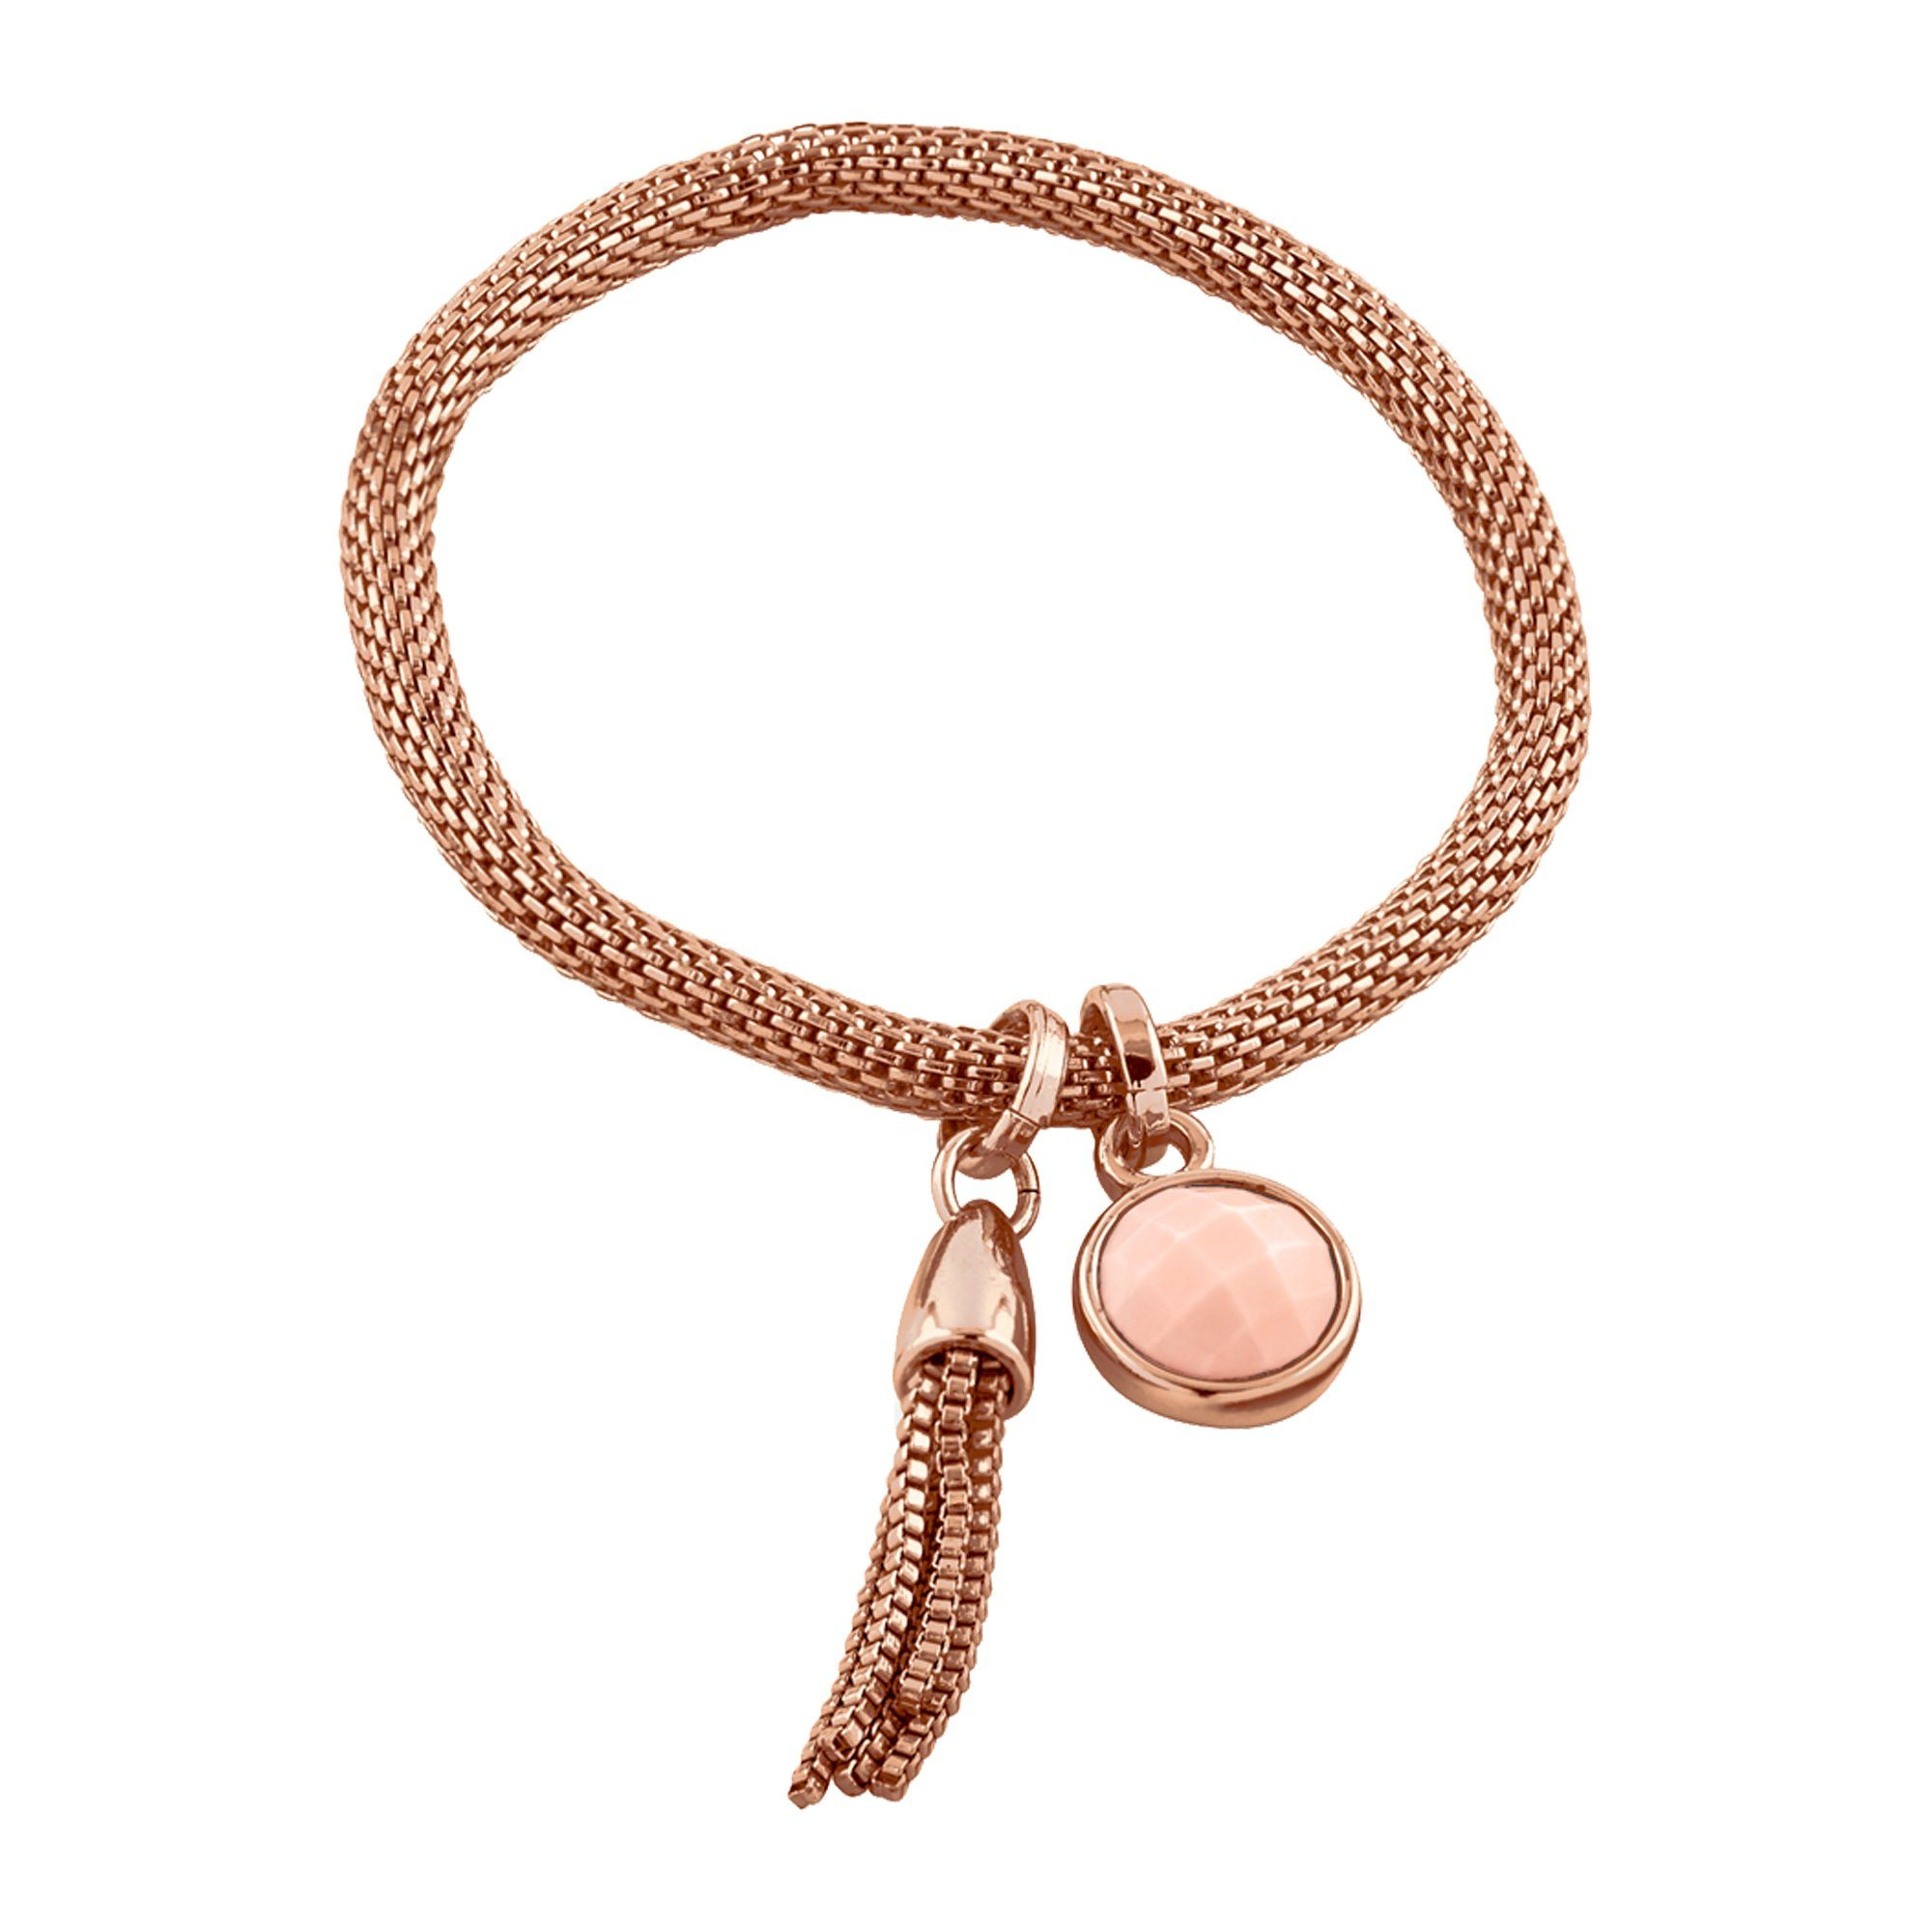 Buckley London Armschmuck Messing rosévergoldet mit Rosenquarz